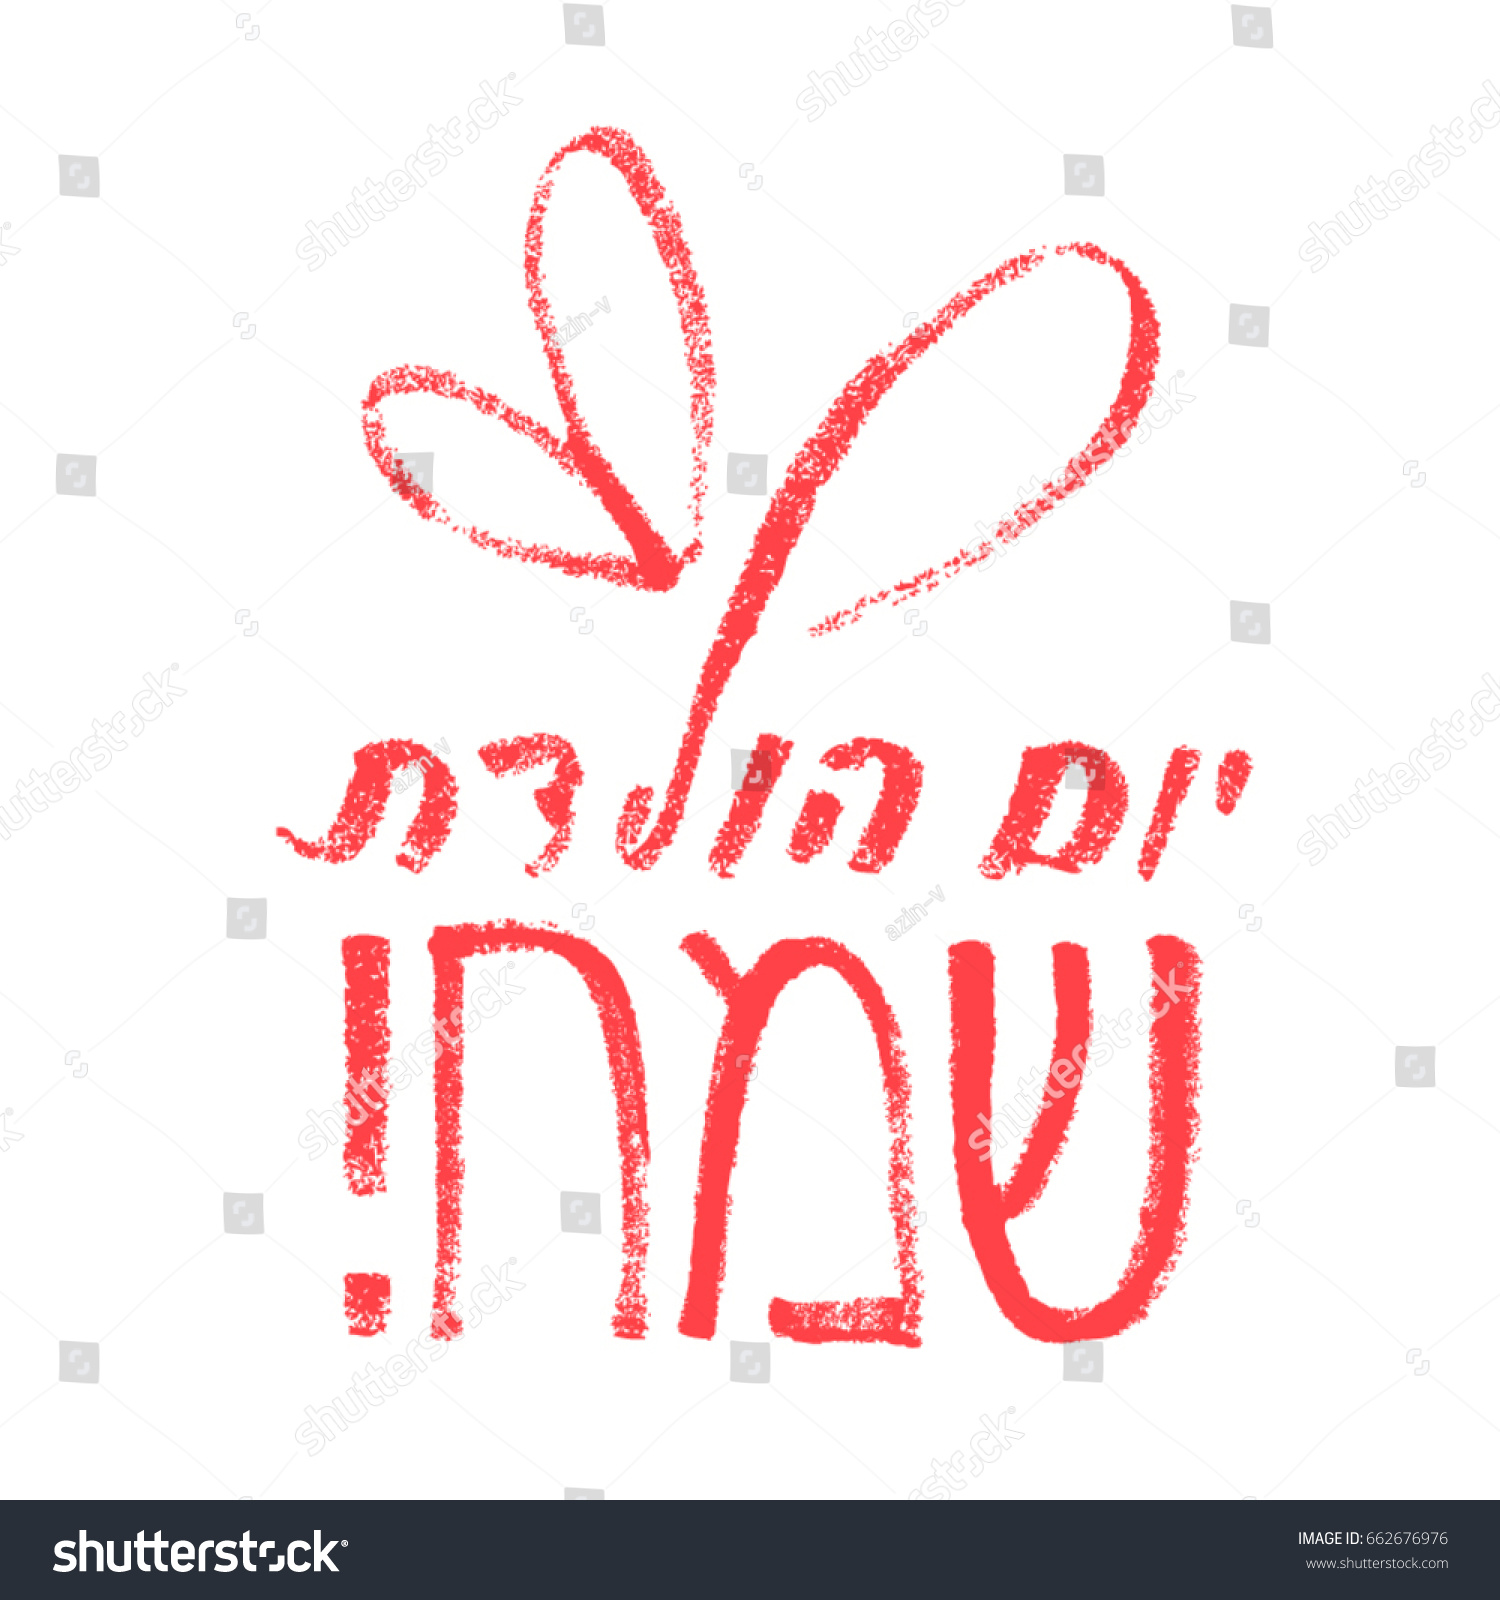 Art lettering happy birthday hebrew shape stock vector 662676976 art lettering happy birthday in hebrew in shape of gift box with bow for kristyandbryce Images